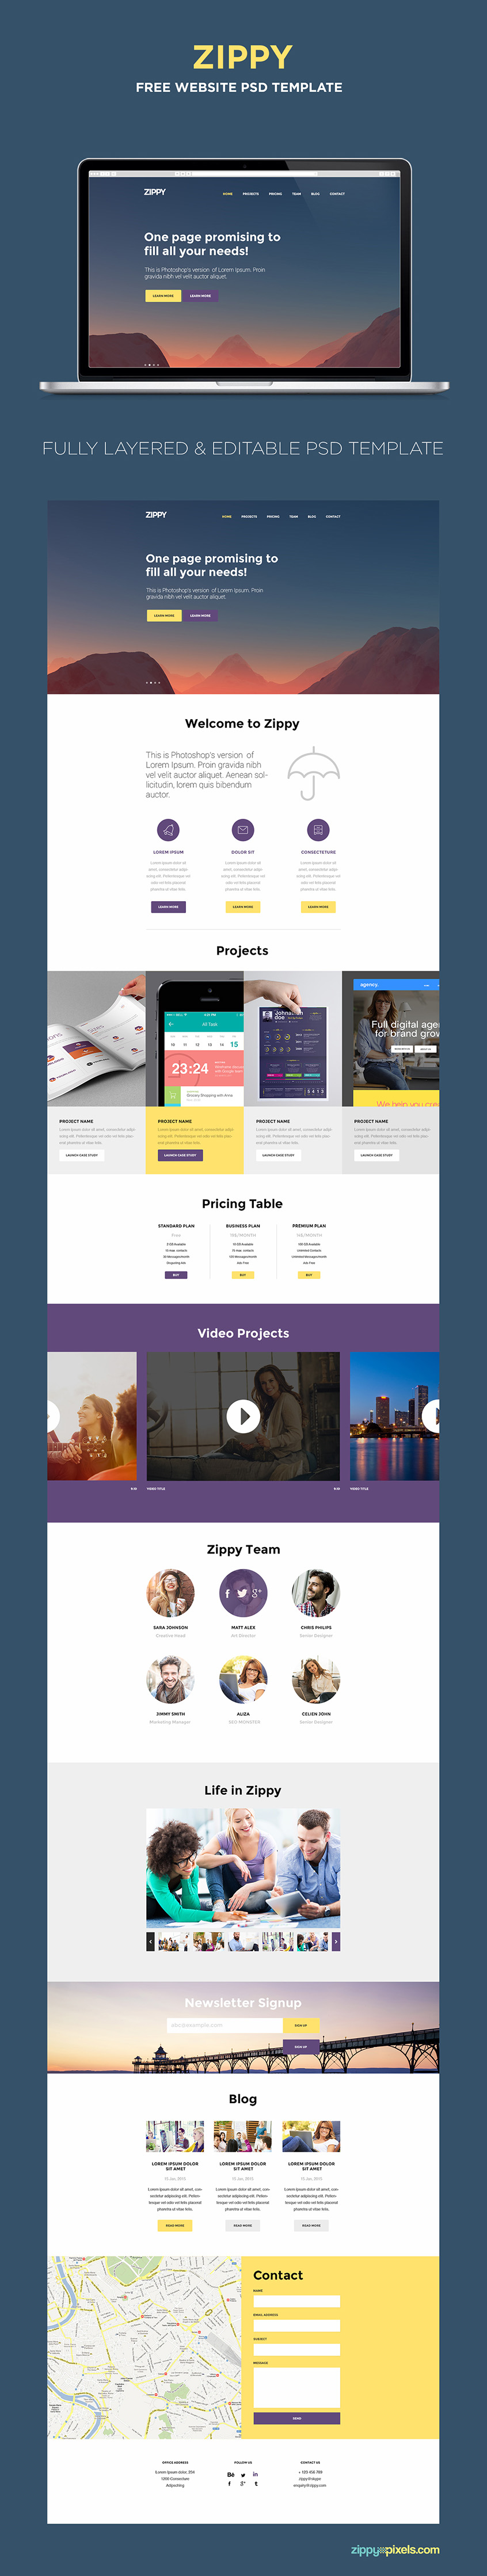 Create or present amazing one page website designs with this free PSD template.